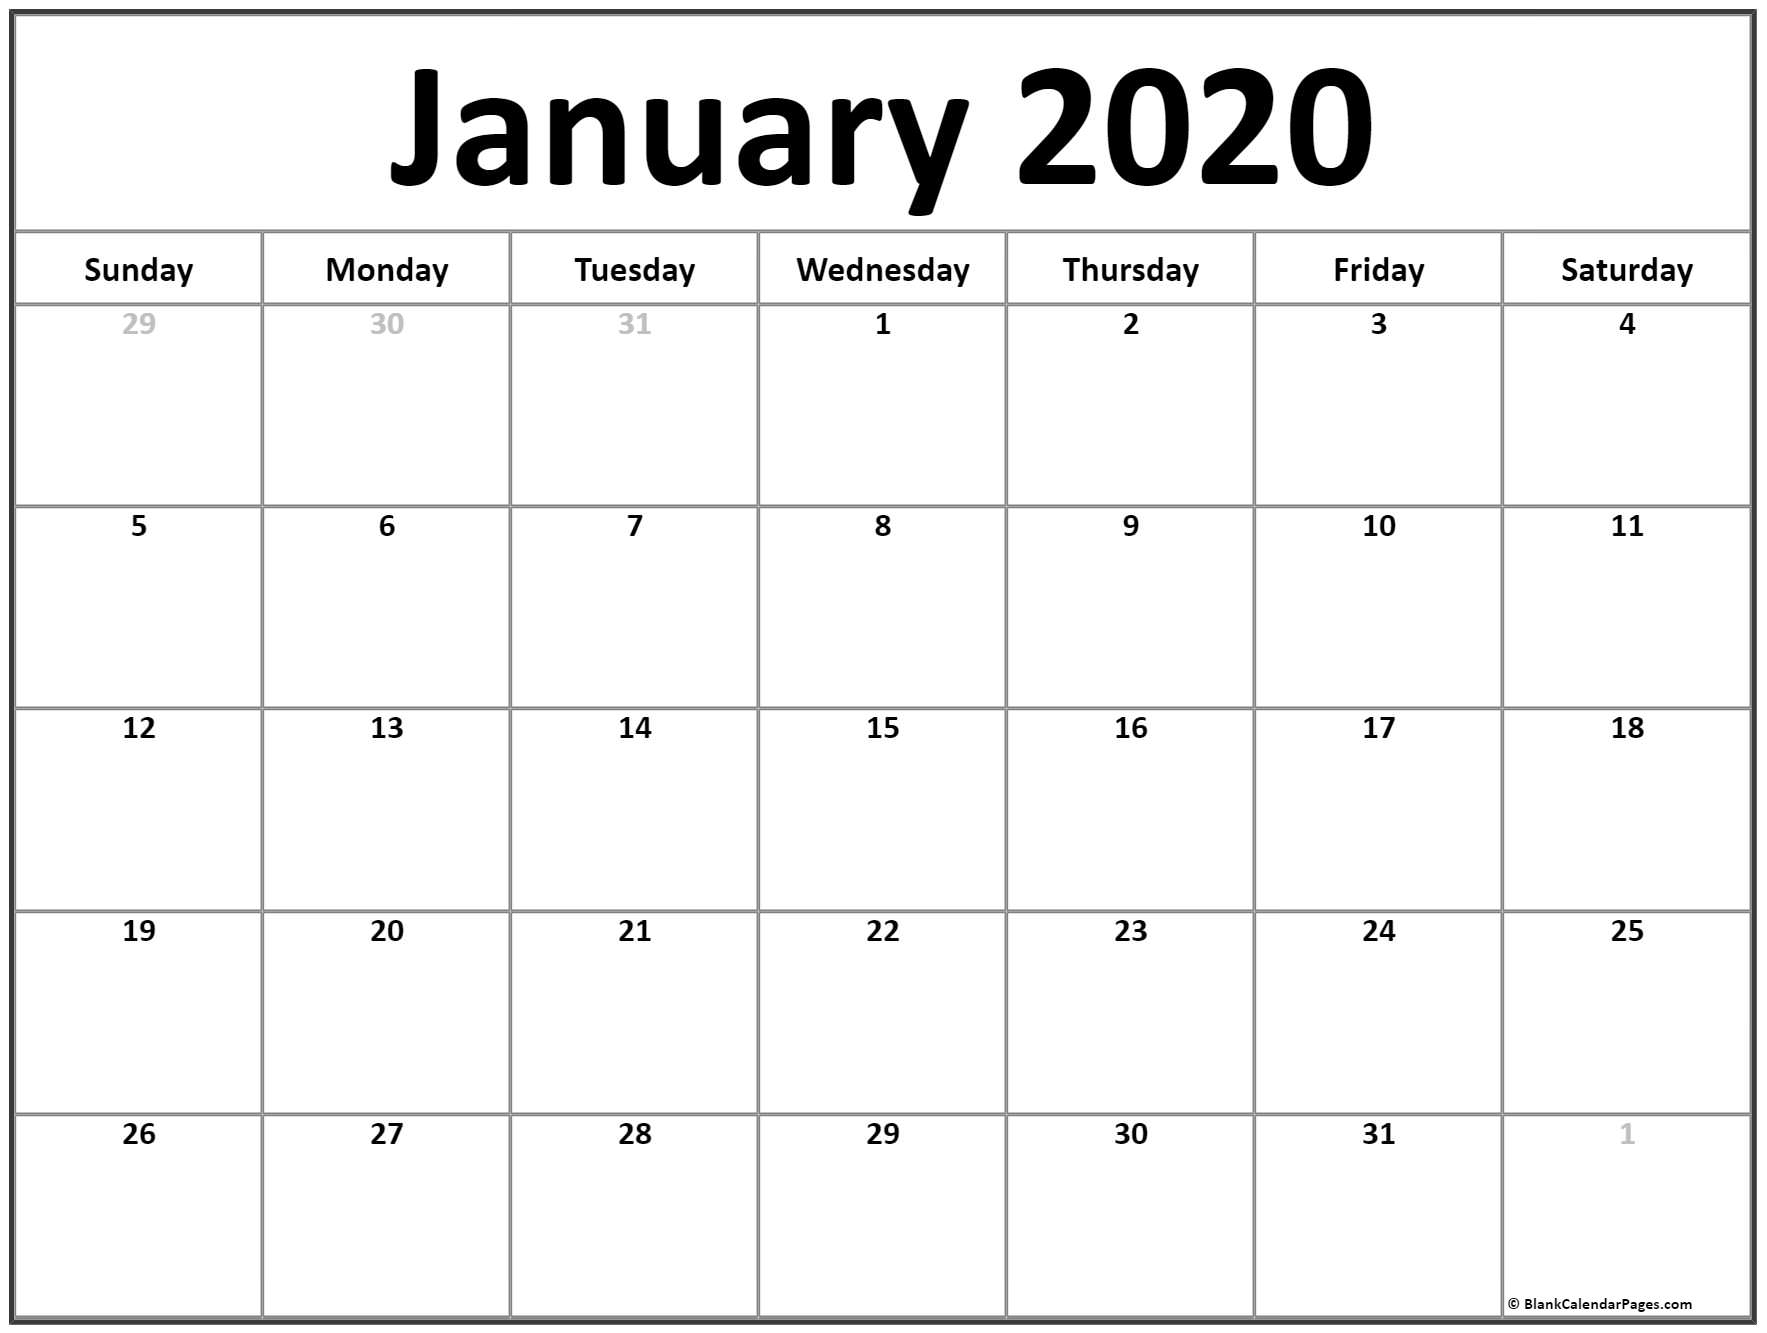 January 2020 Calendar   Free Printable Monthly Calendars throughout Print Free Calendars Without Downloading 2020